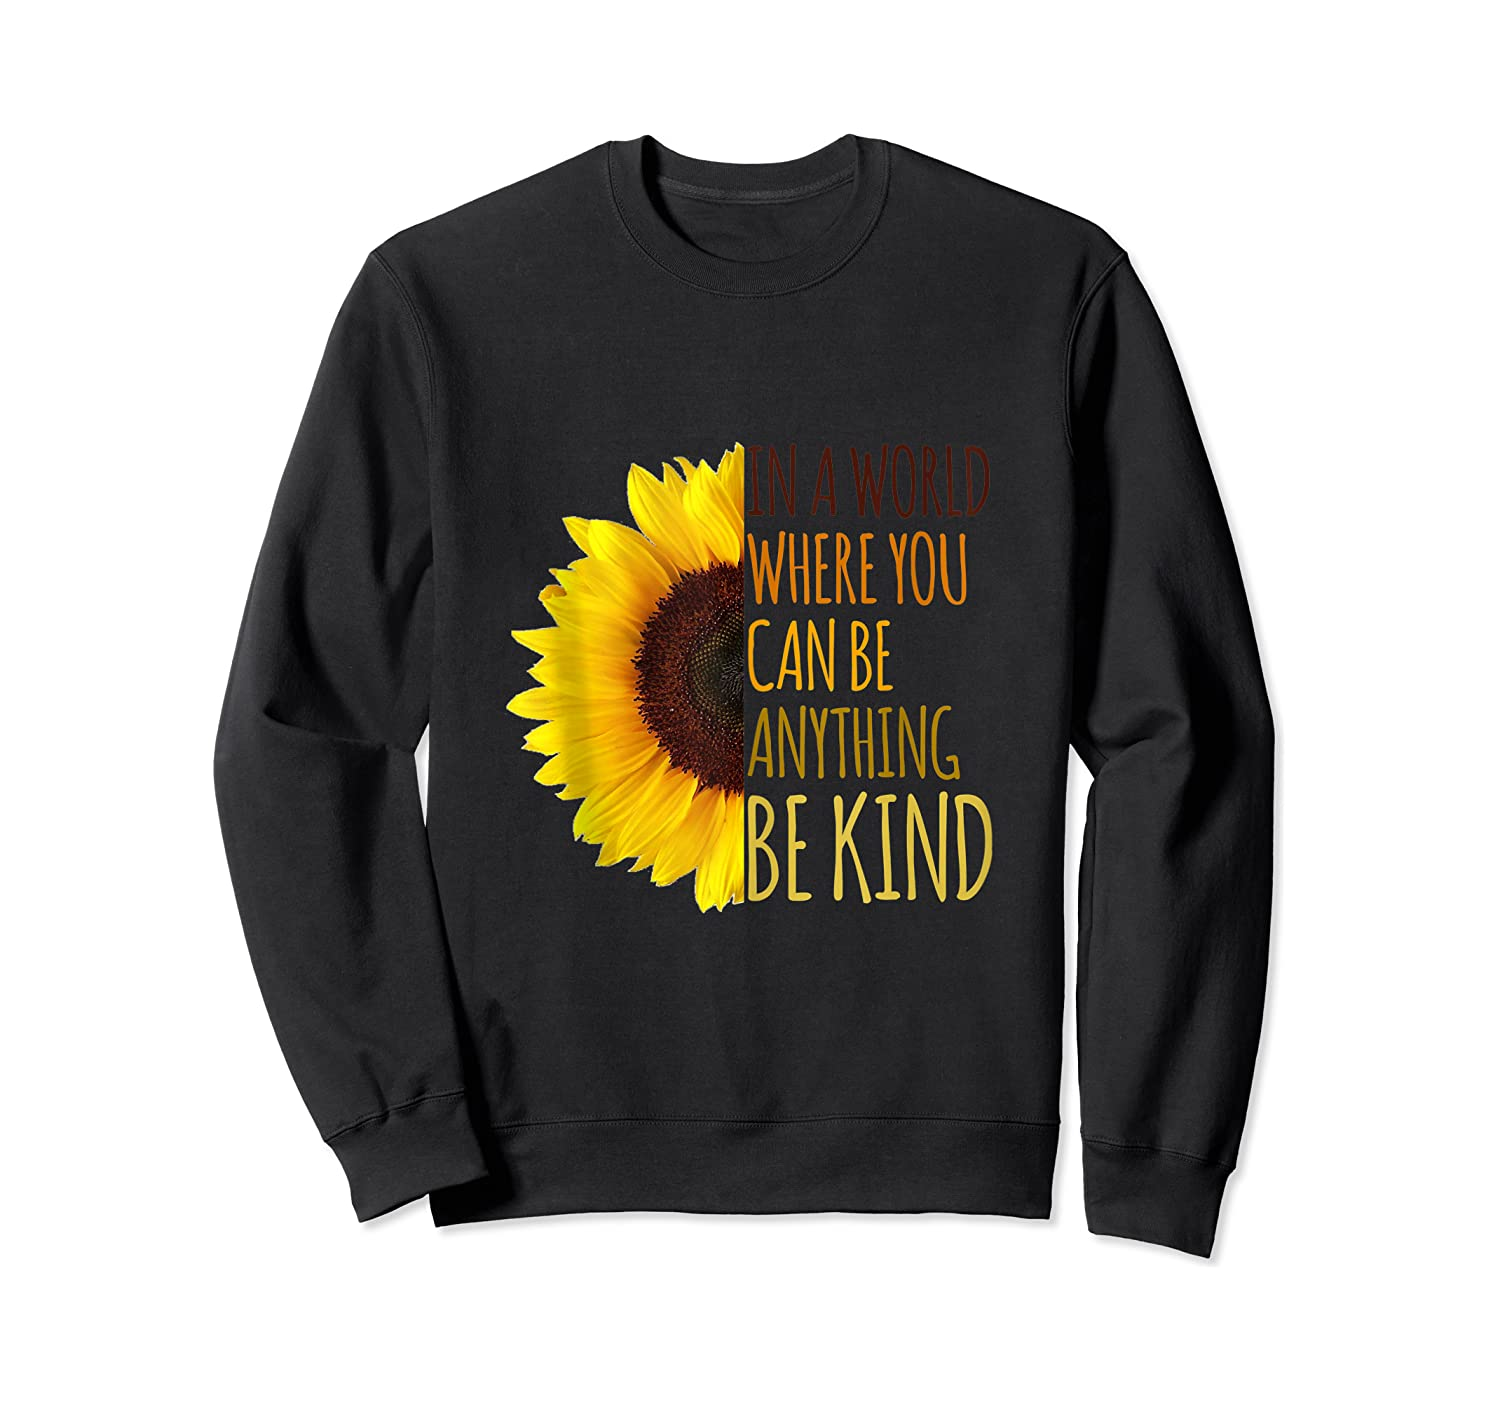 In A World Where You Can Be Anything Be Kind, Kindness Shirts Crewneck Sweater